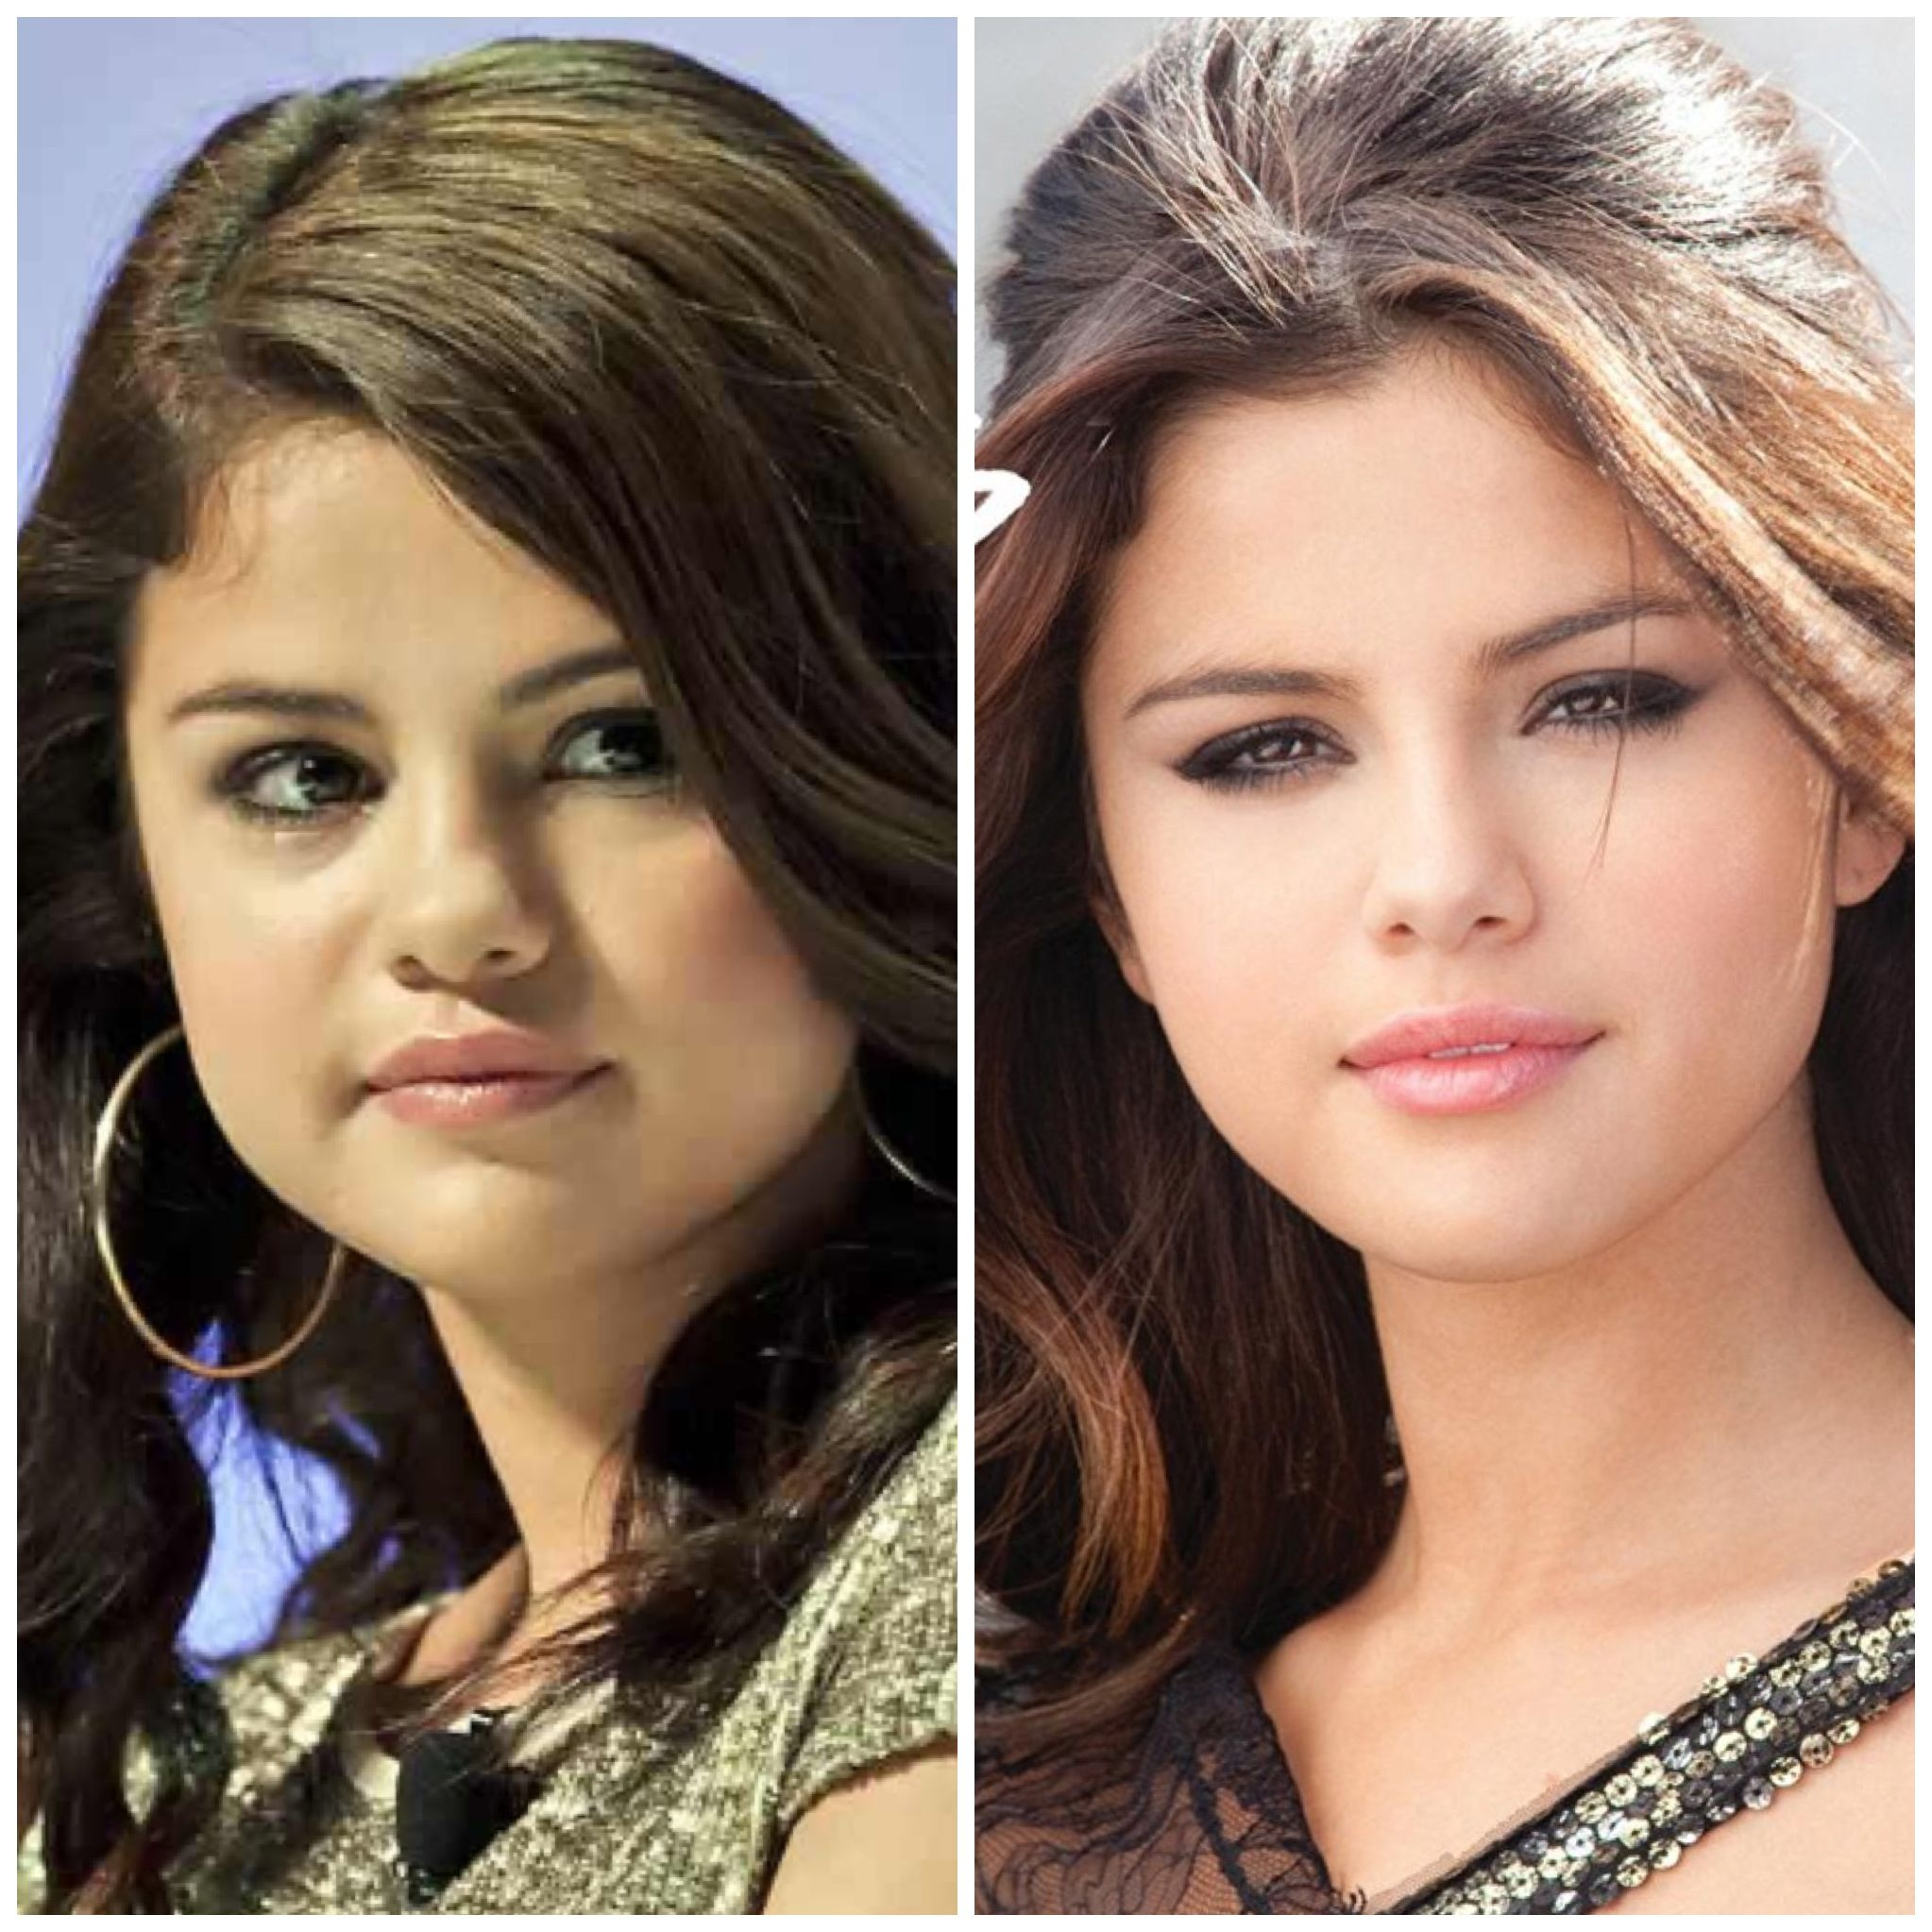 55 shocking images of celebrities before and after photoshop lady - Selena Gomez Photoshop Miracles